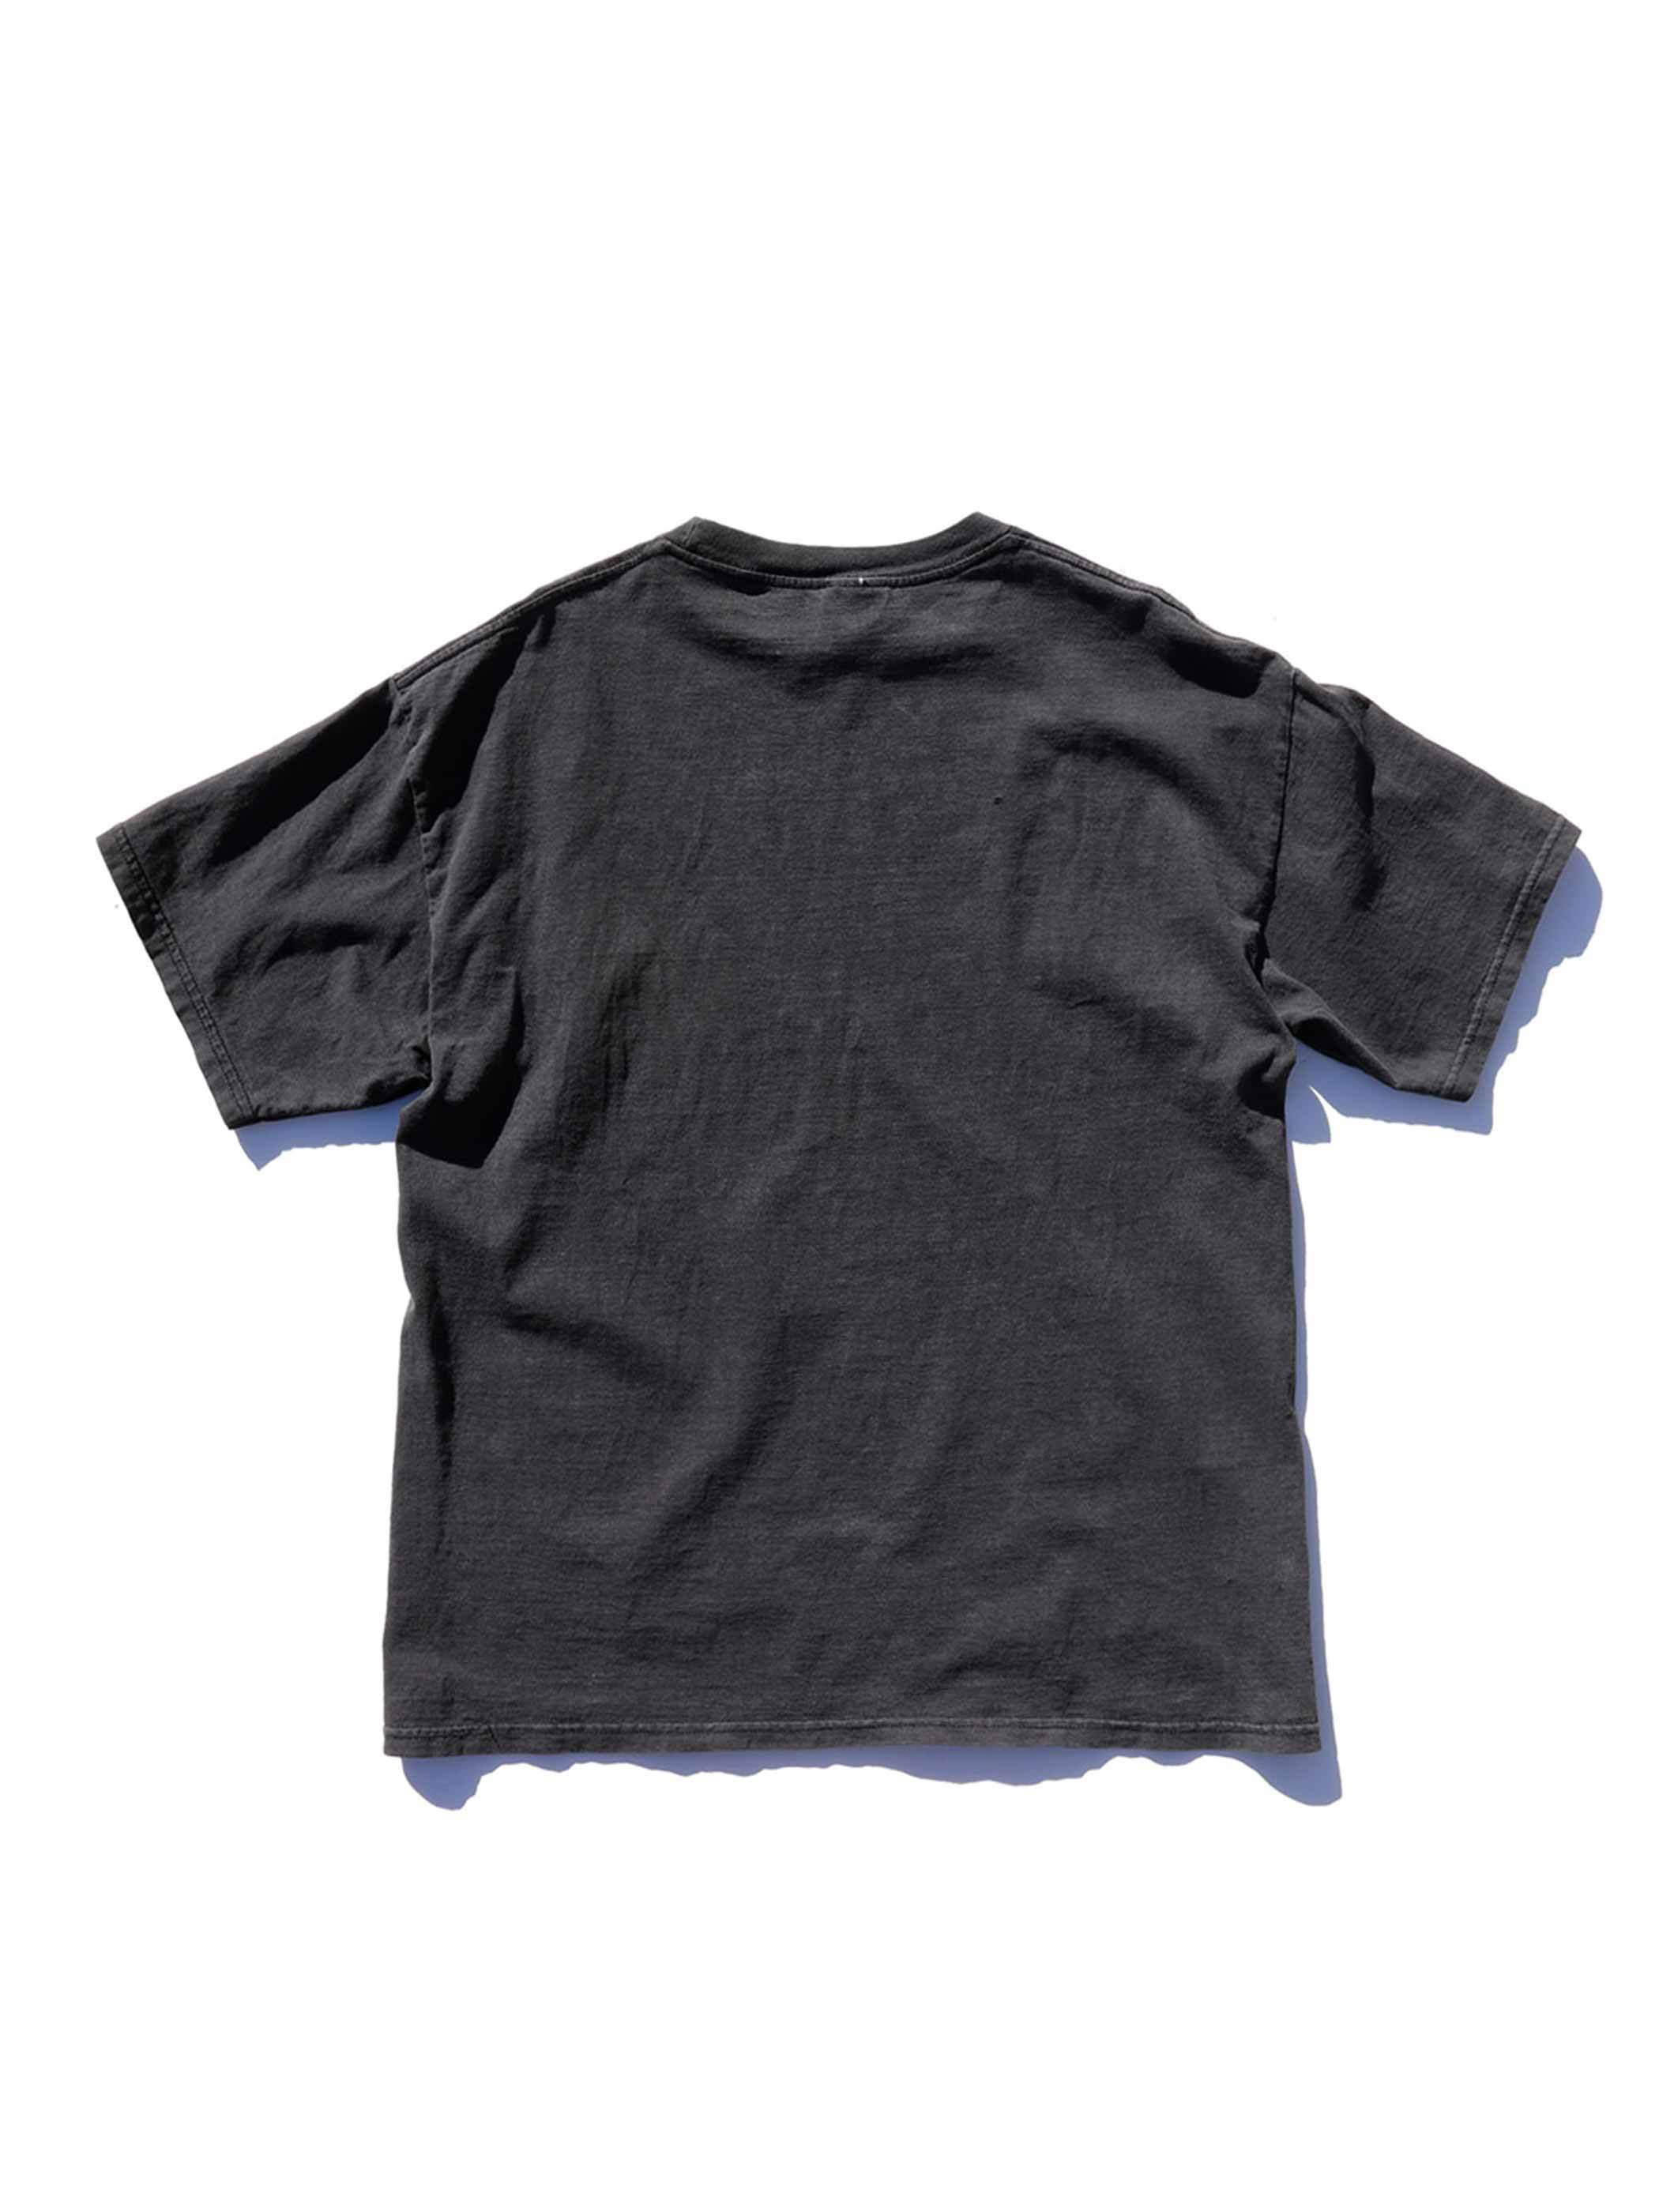 90's I BECAME AN ASSHOLE Tシャツ [XL]